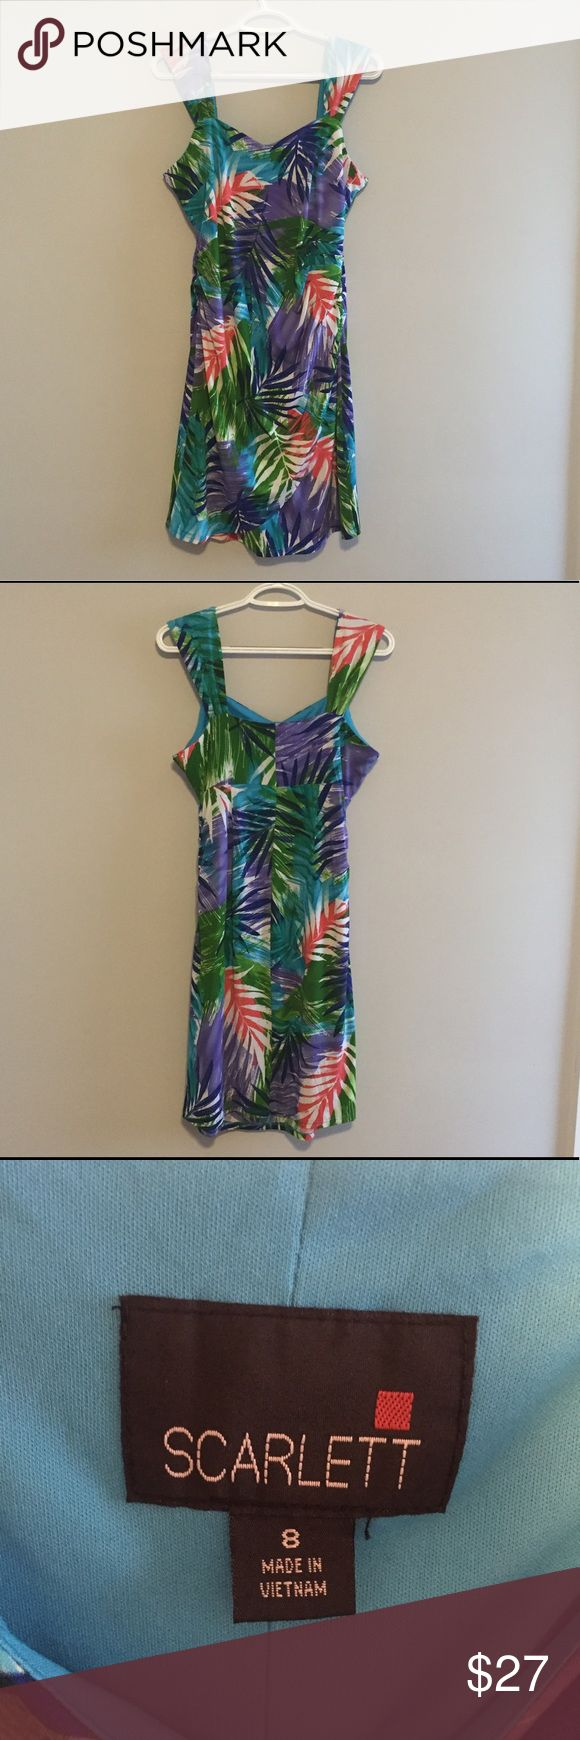 Scarlett Summer Dress Sz 8 Like New Cute colorful dress. Size 8 but is dress, so can fit a size up or down. Reasonable offers are always considered ✔️😄 Scarlett Dresses